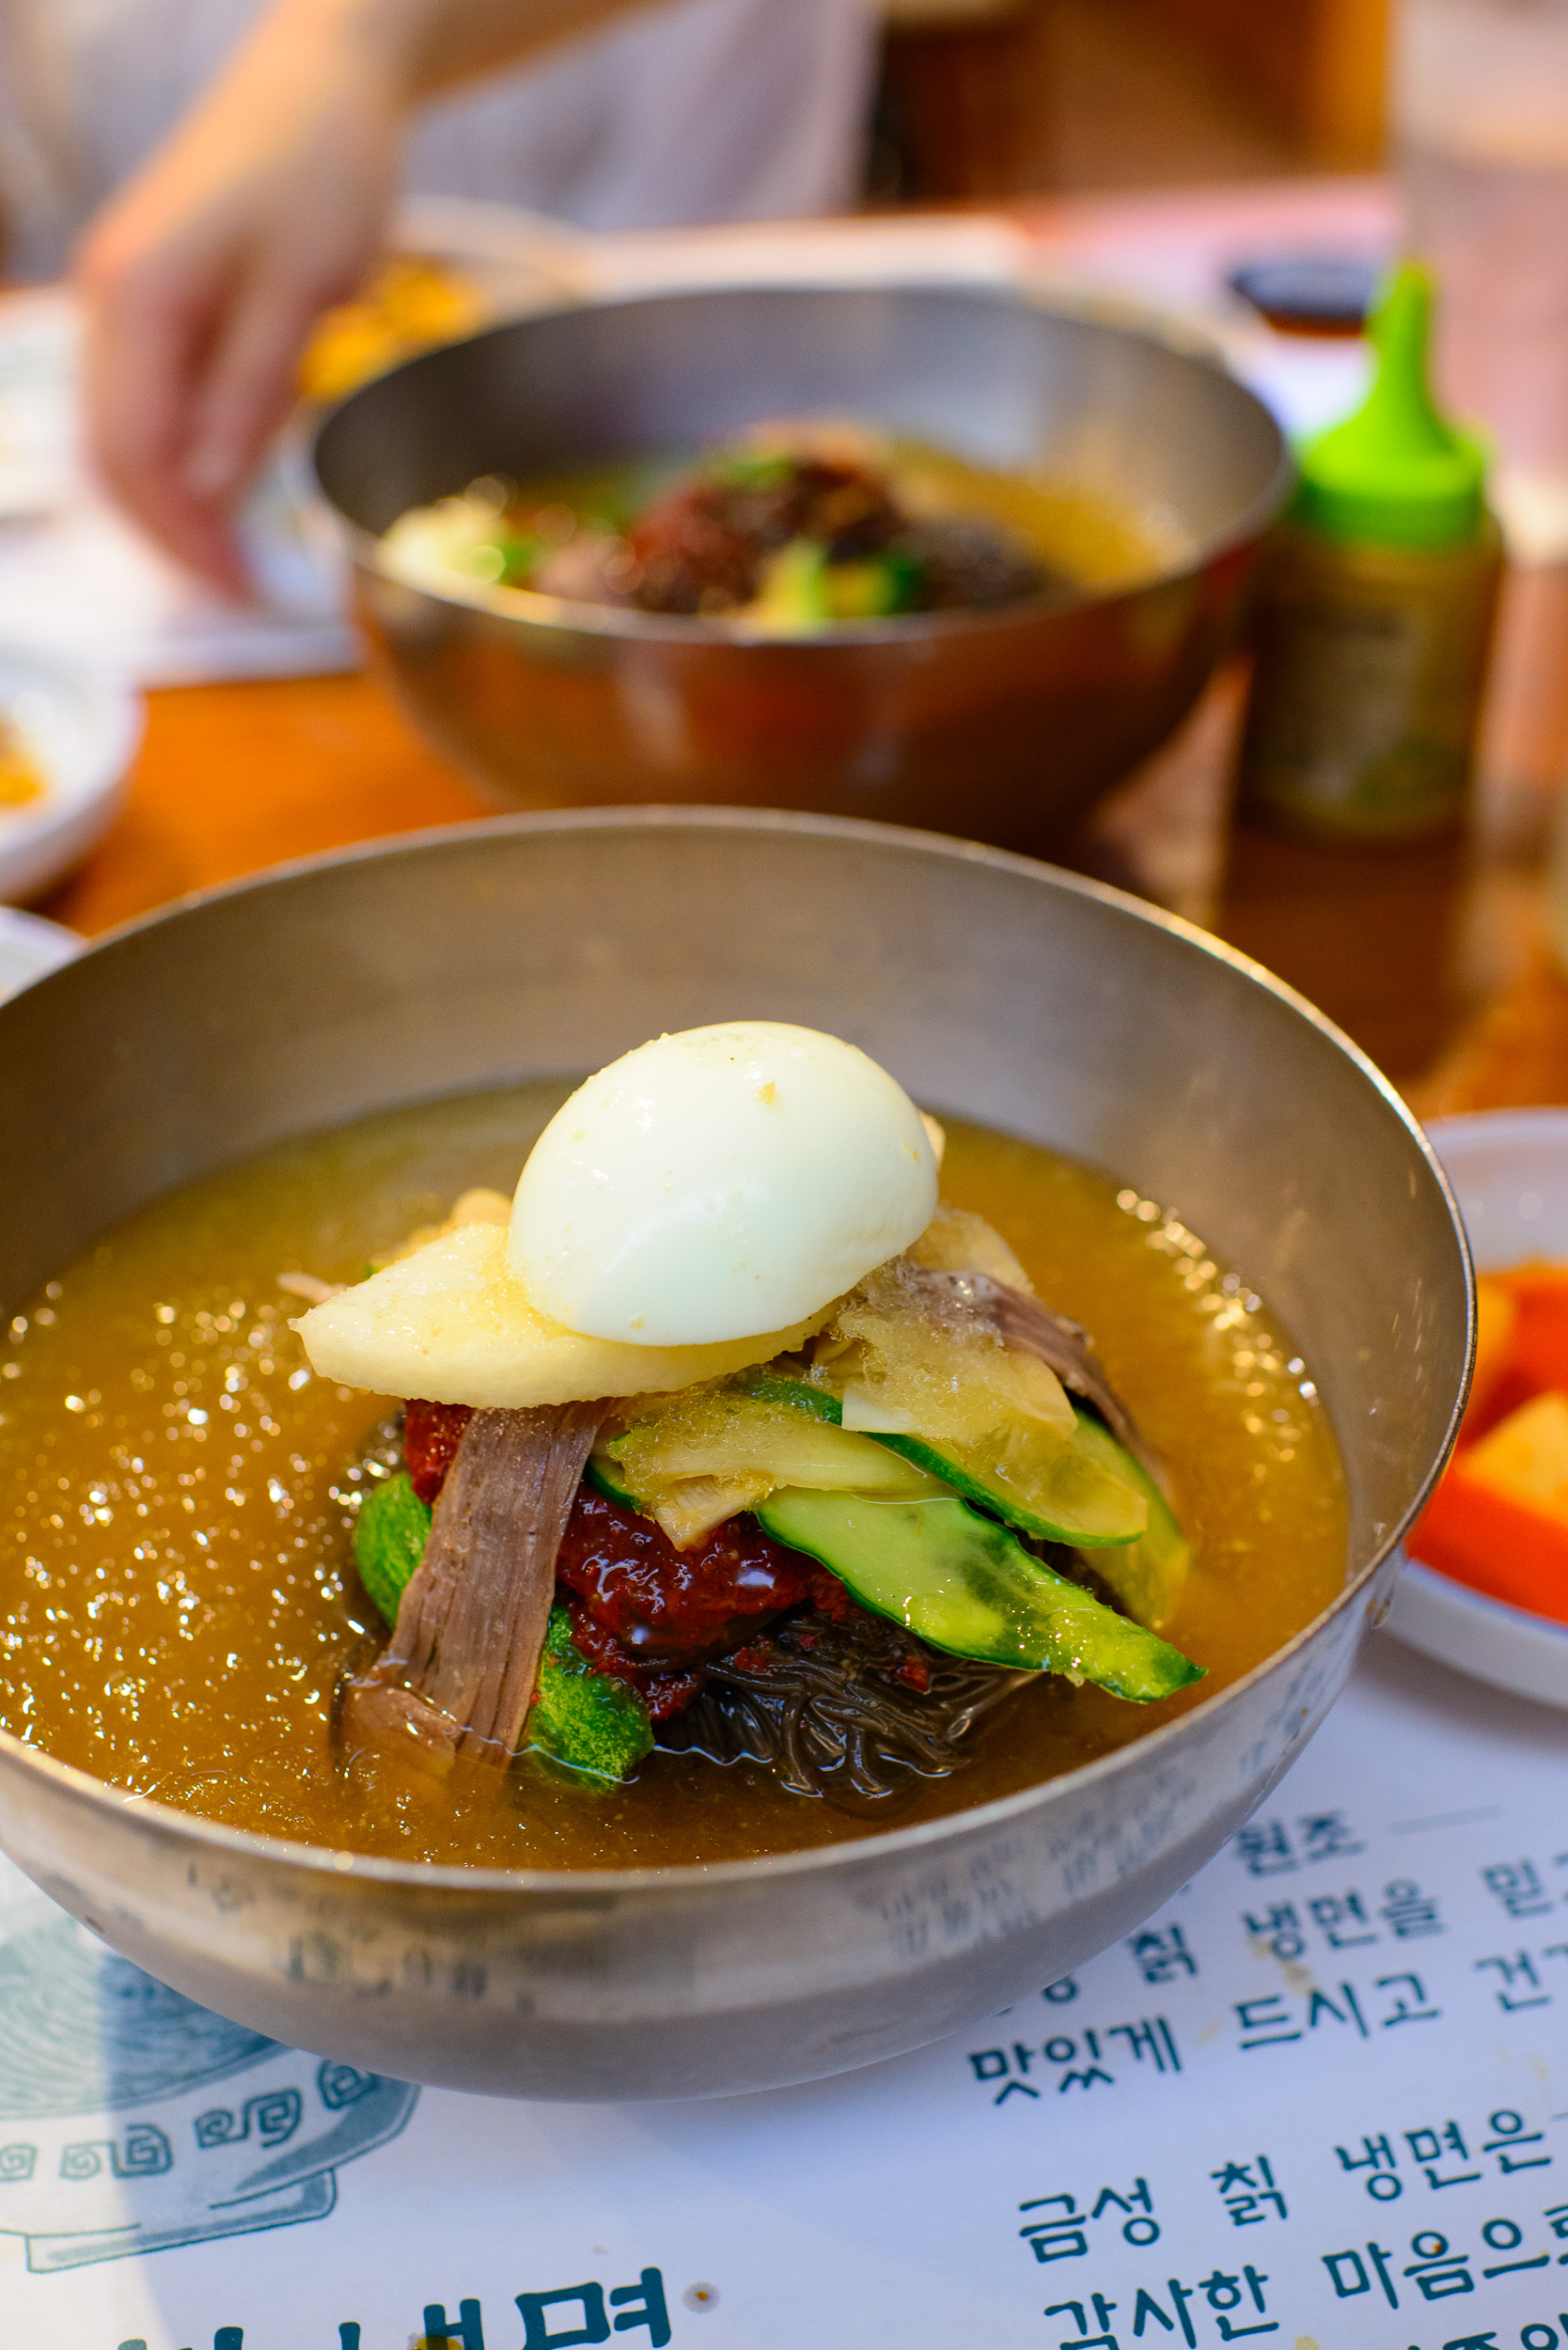 Mul naeng myun - cold buckwheat noodles in beef broth ($10.99)